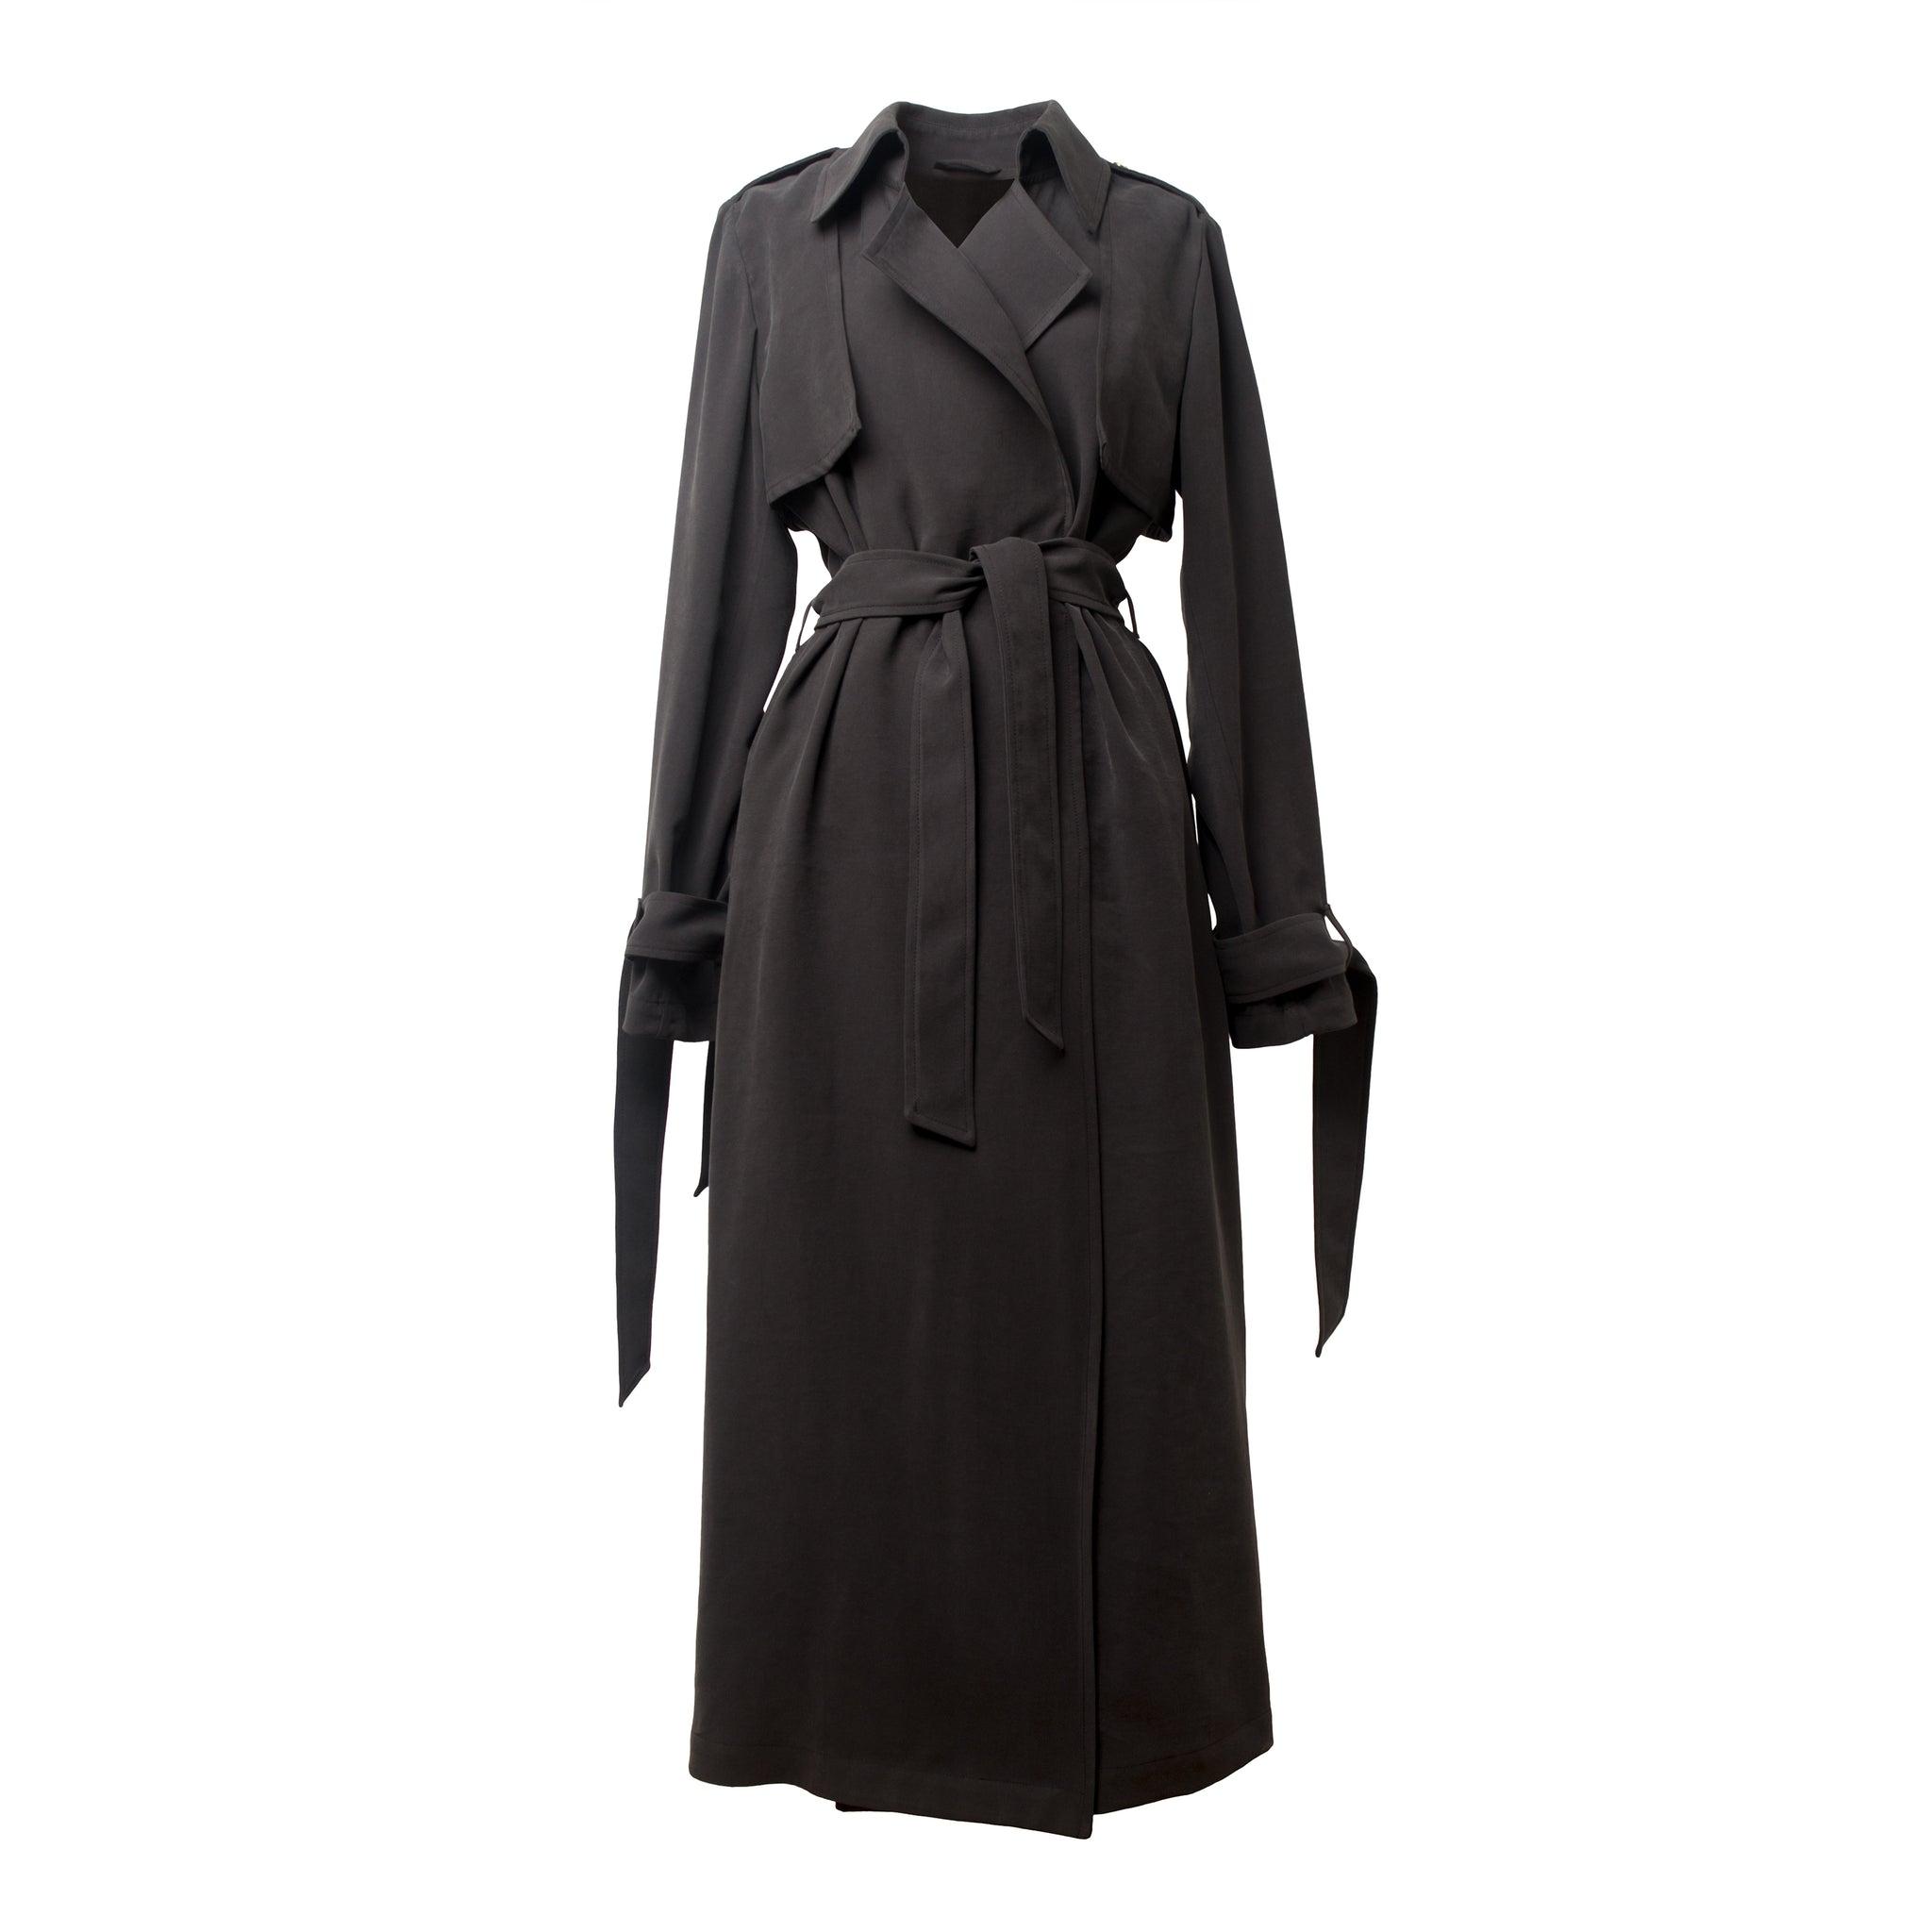 KISTELEK Charcoal Trench Coat